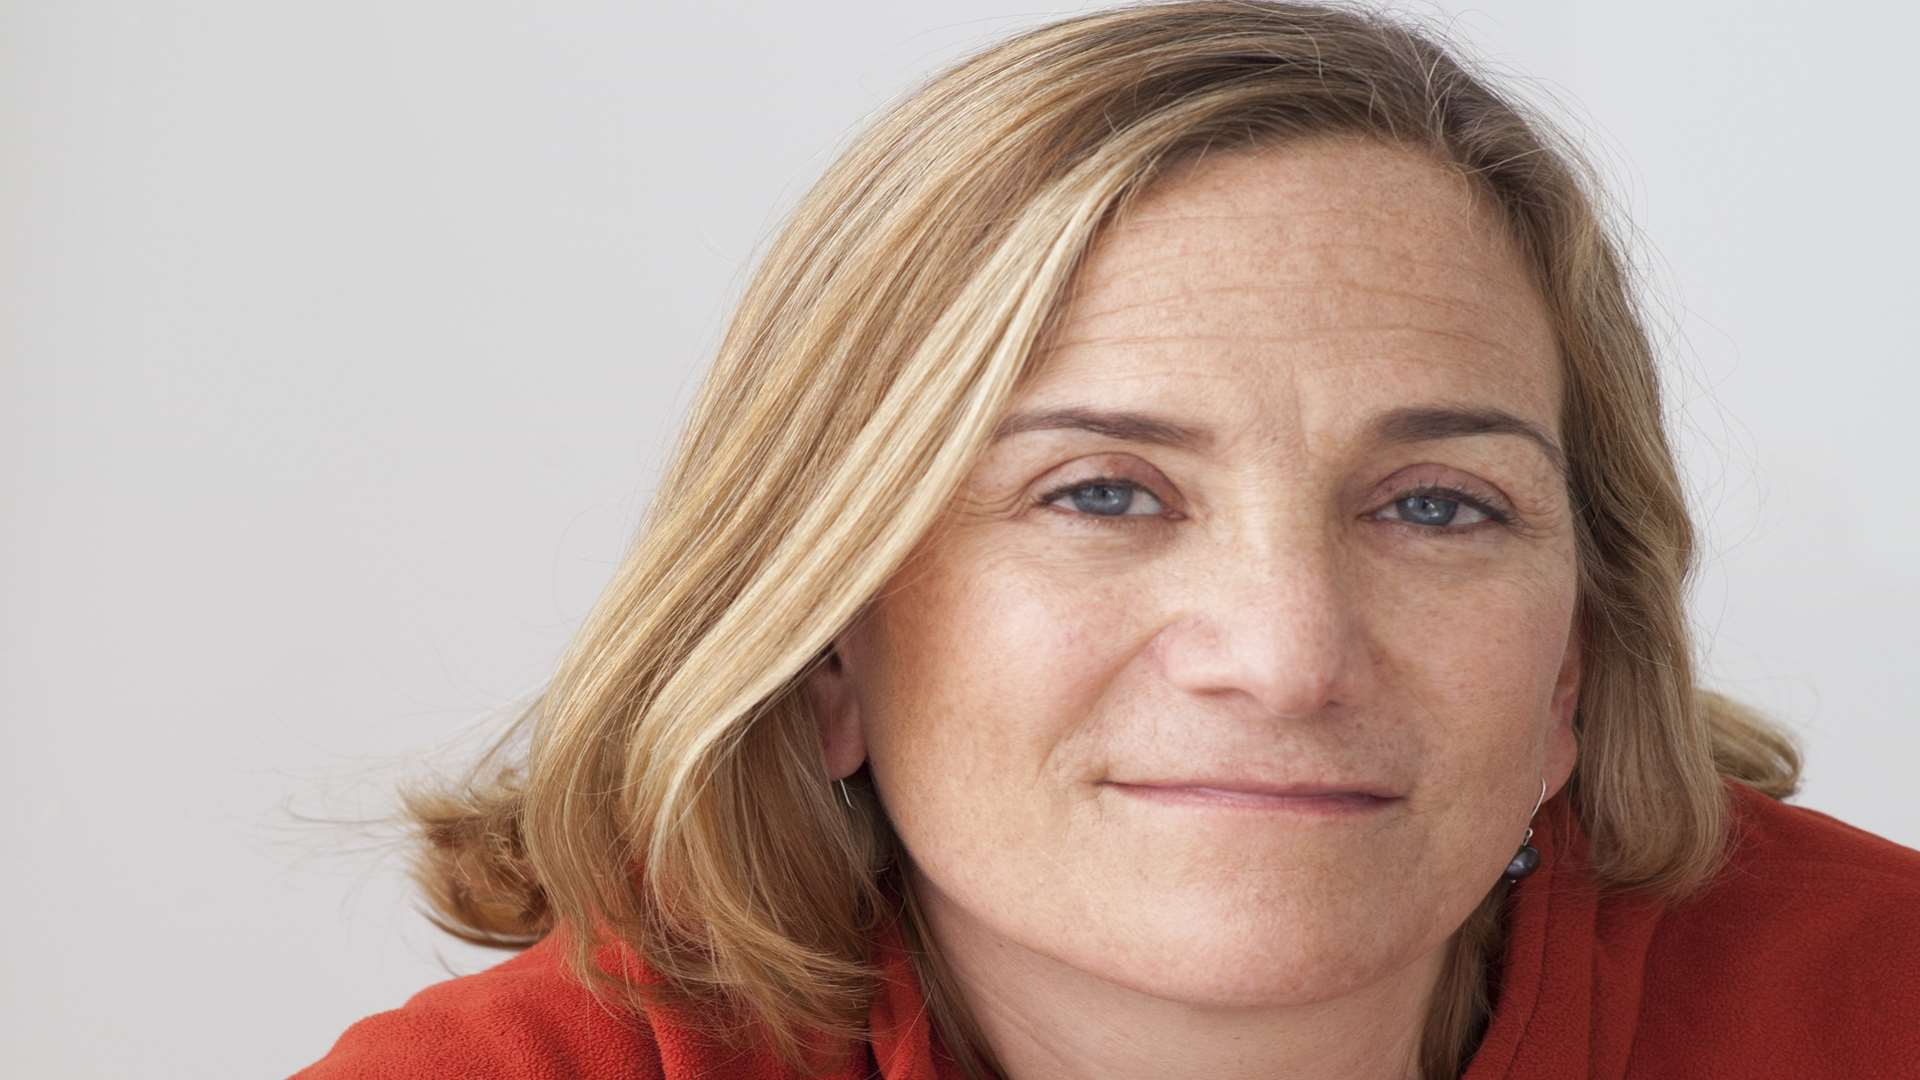 Tracy Chevalier, author of the Girl with the Pearl Earring, will be launching the book festival with a Christmas lights switch-on